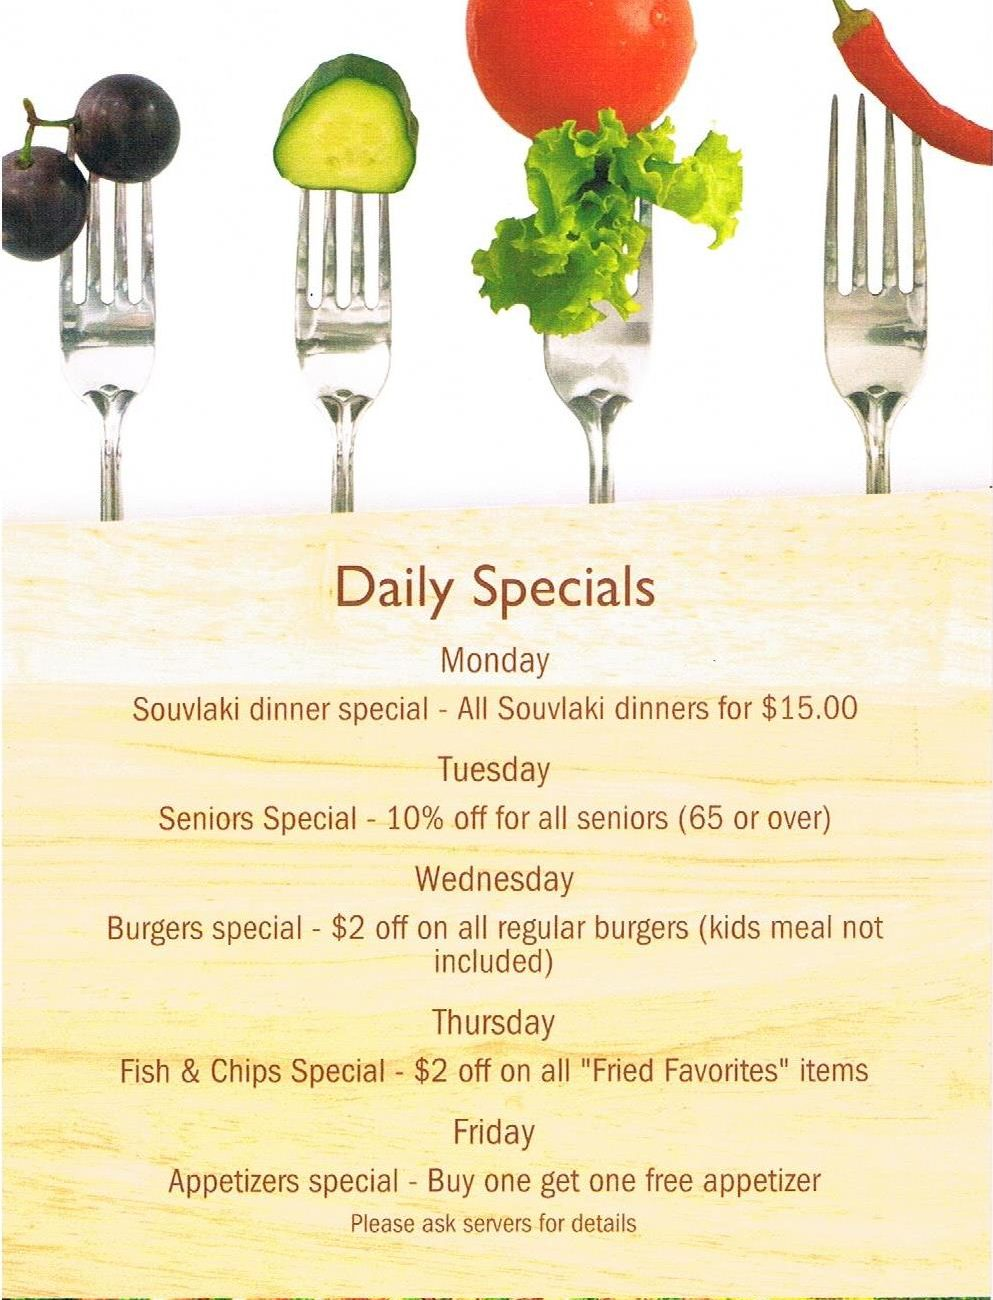 Daily Specials for site